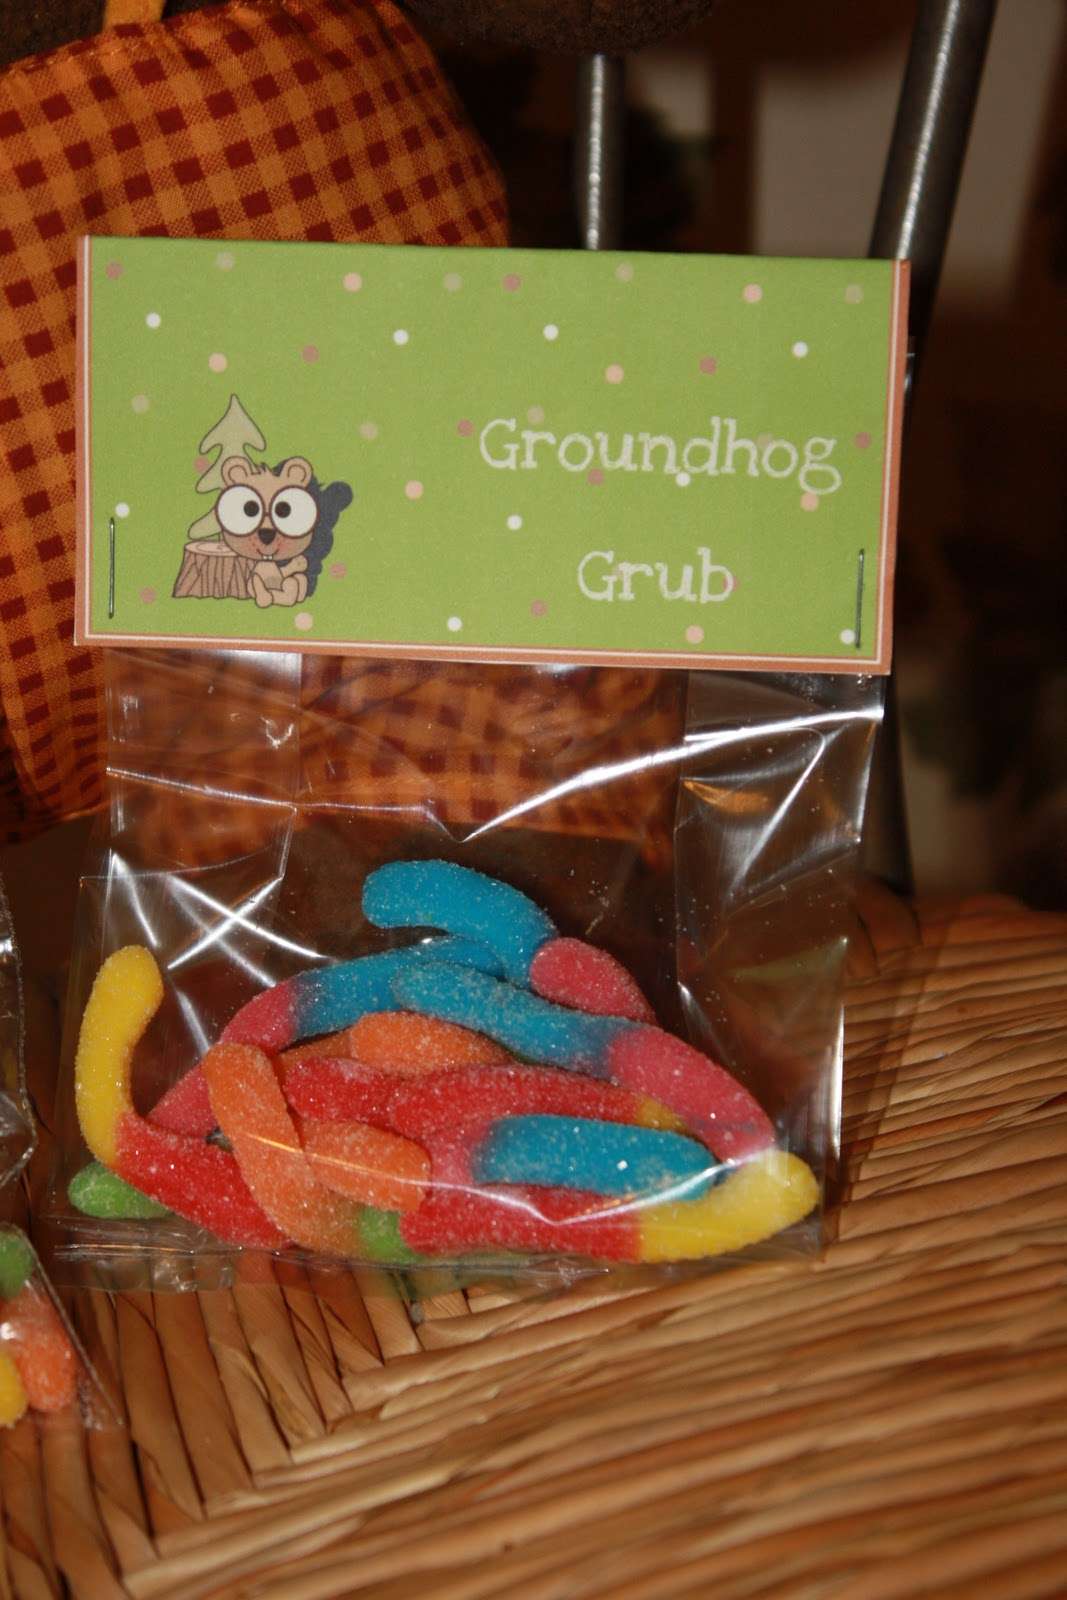 Trendz And Traditions: Groundhog Day